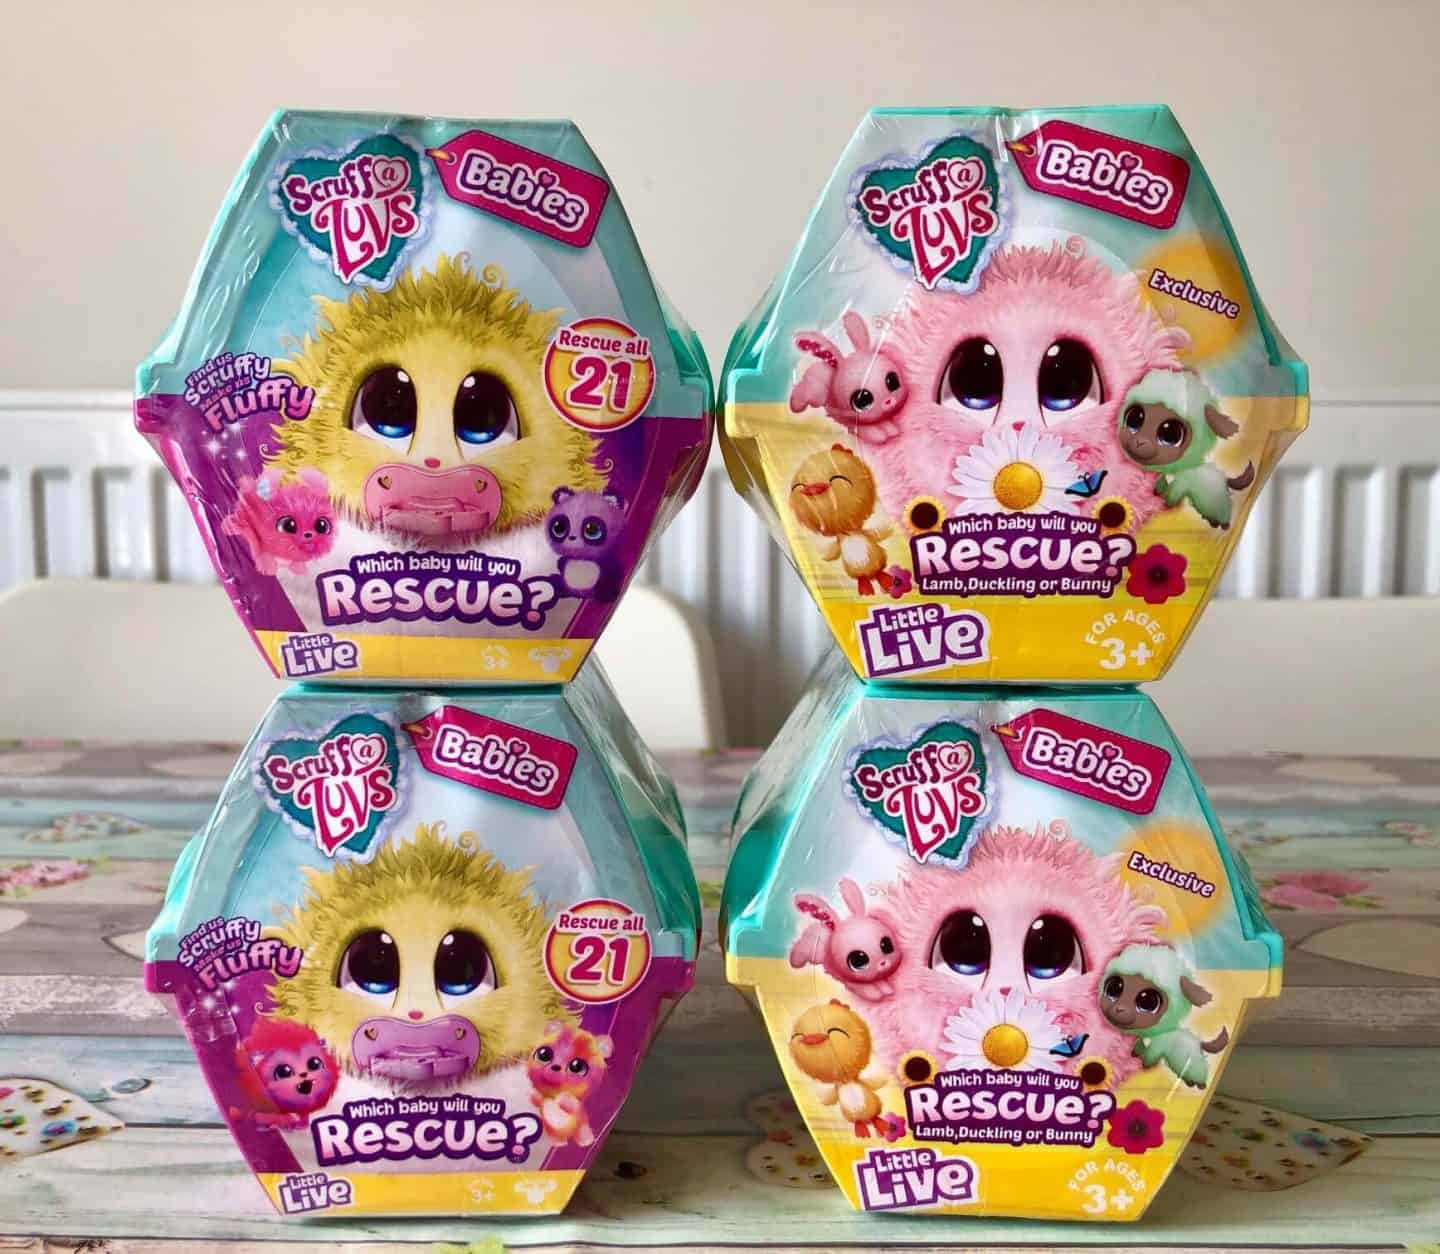 Scruff-a-Luvs Spring Babies and Baby Collectibles